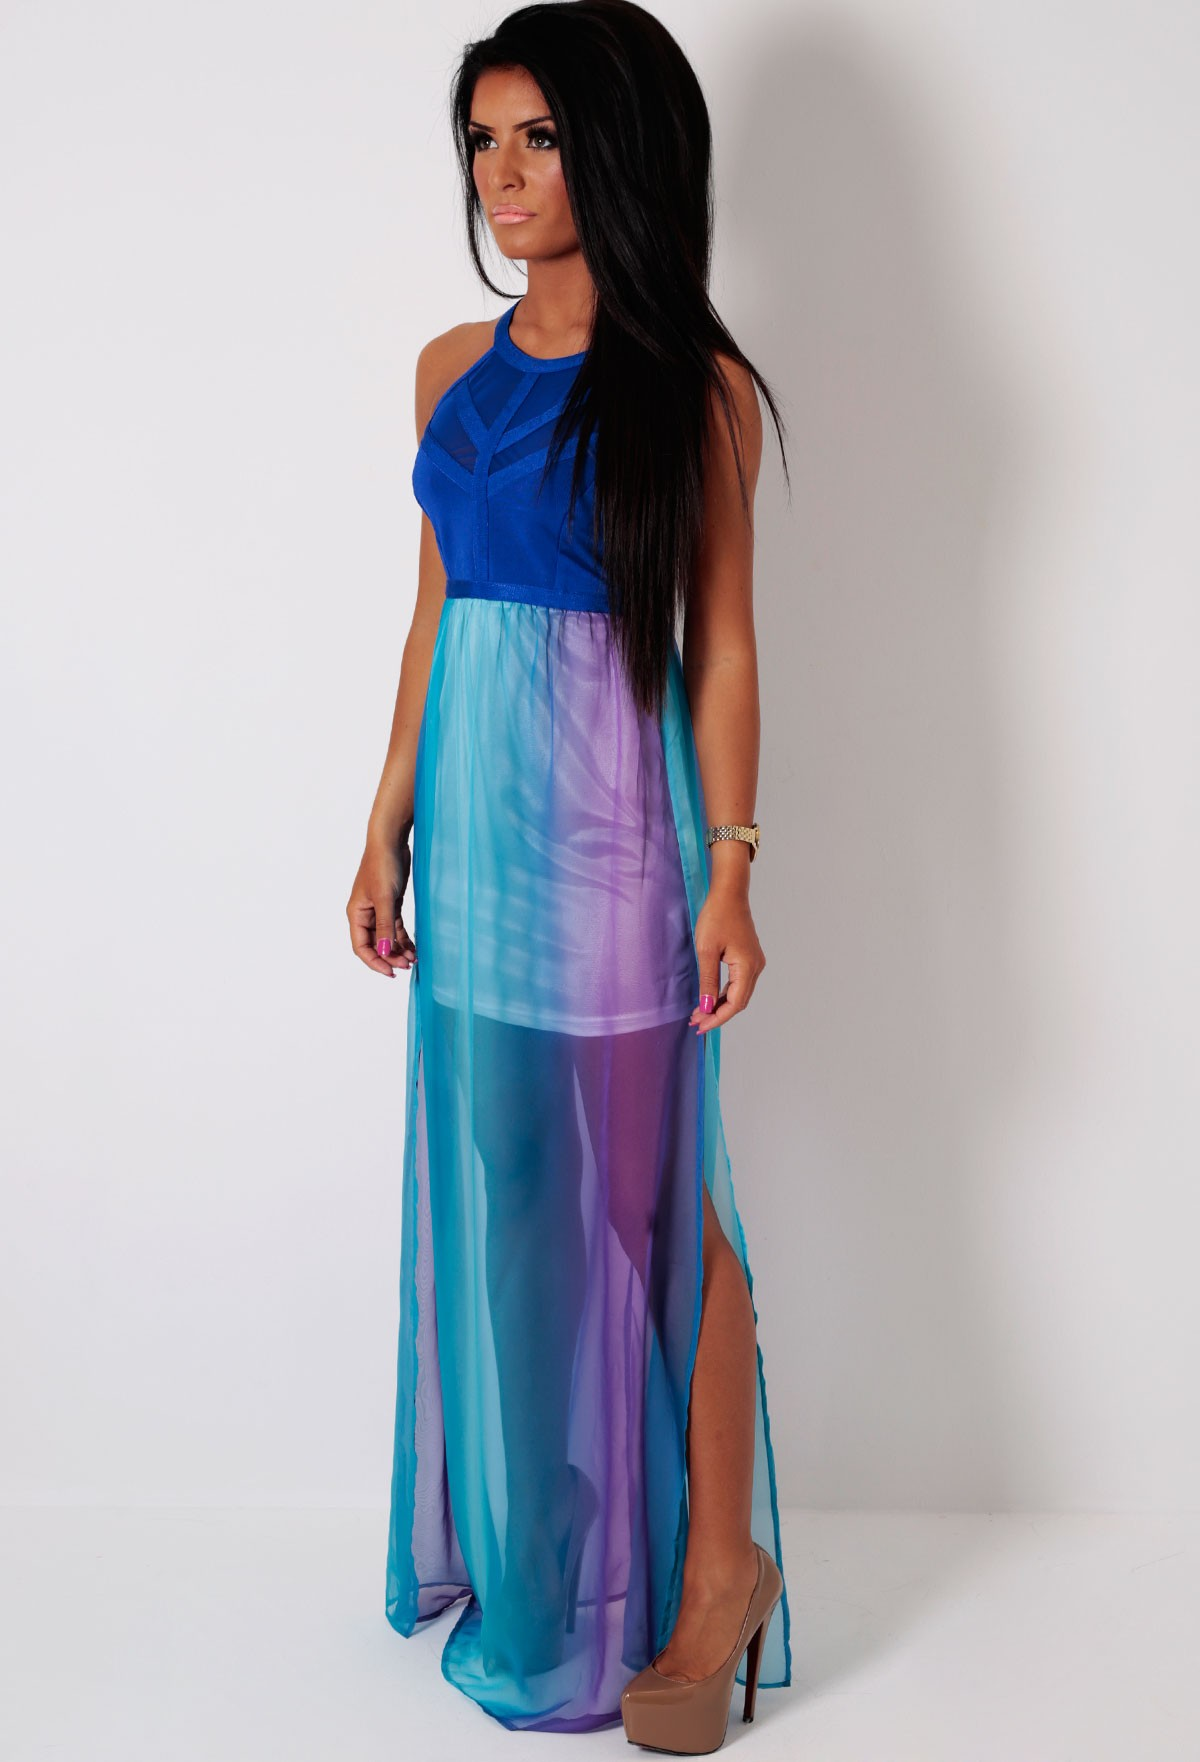 Pink and blue maxi dress